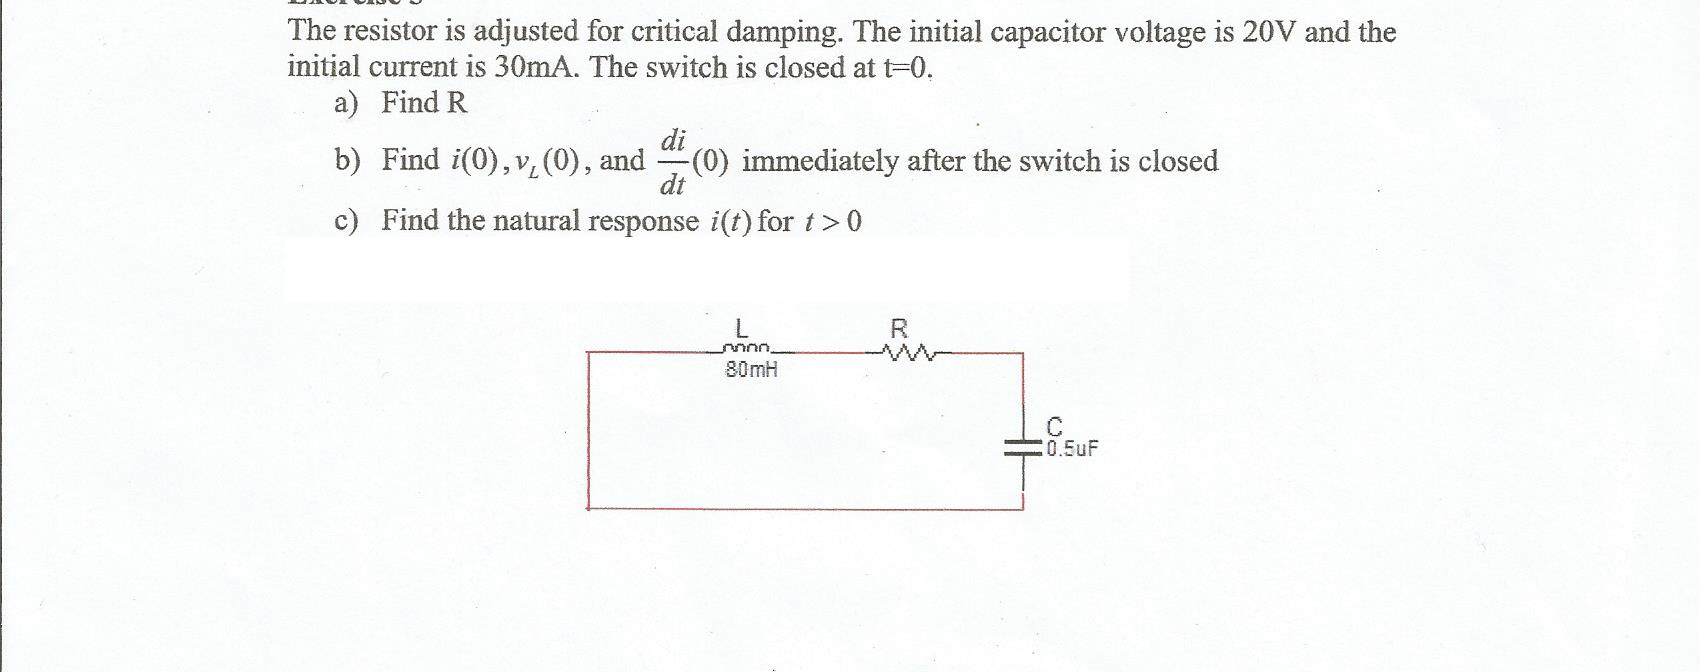 The resistor is adjusted for critical damping. The